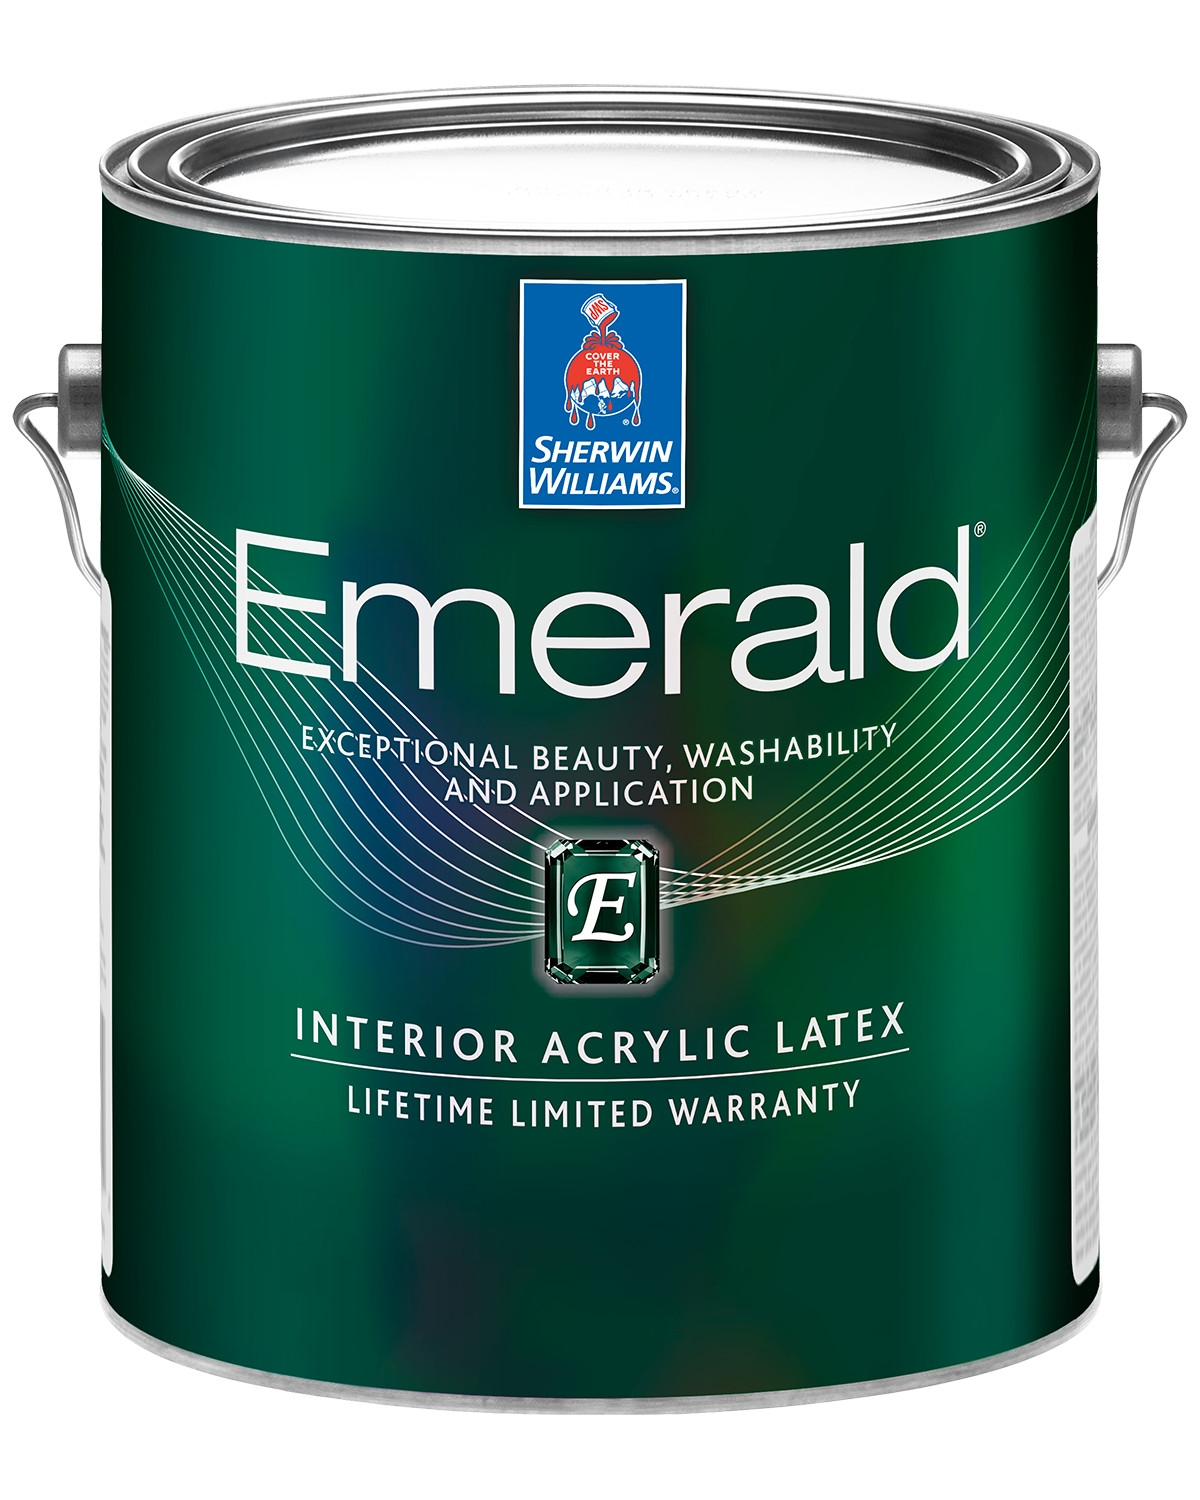 Interior latex paint uk Sherwin williams emerald interior paint